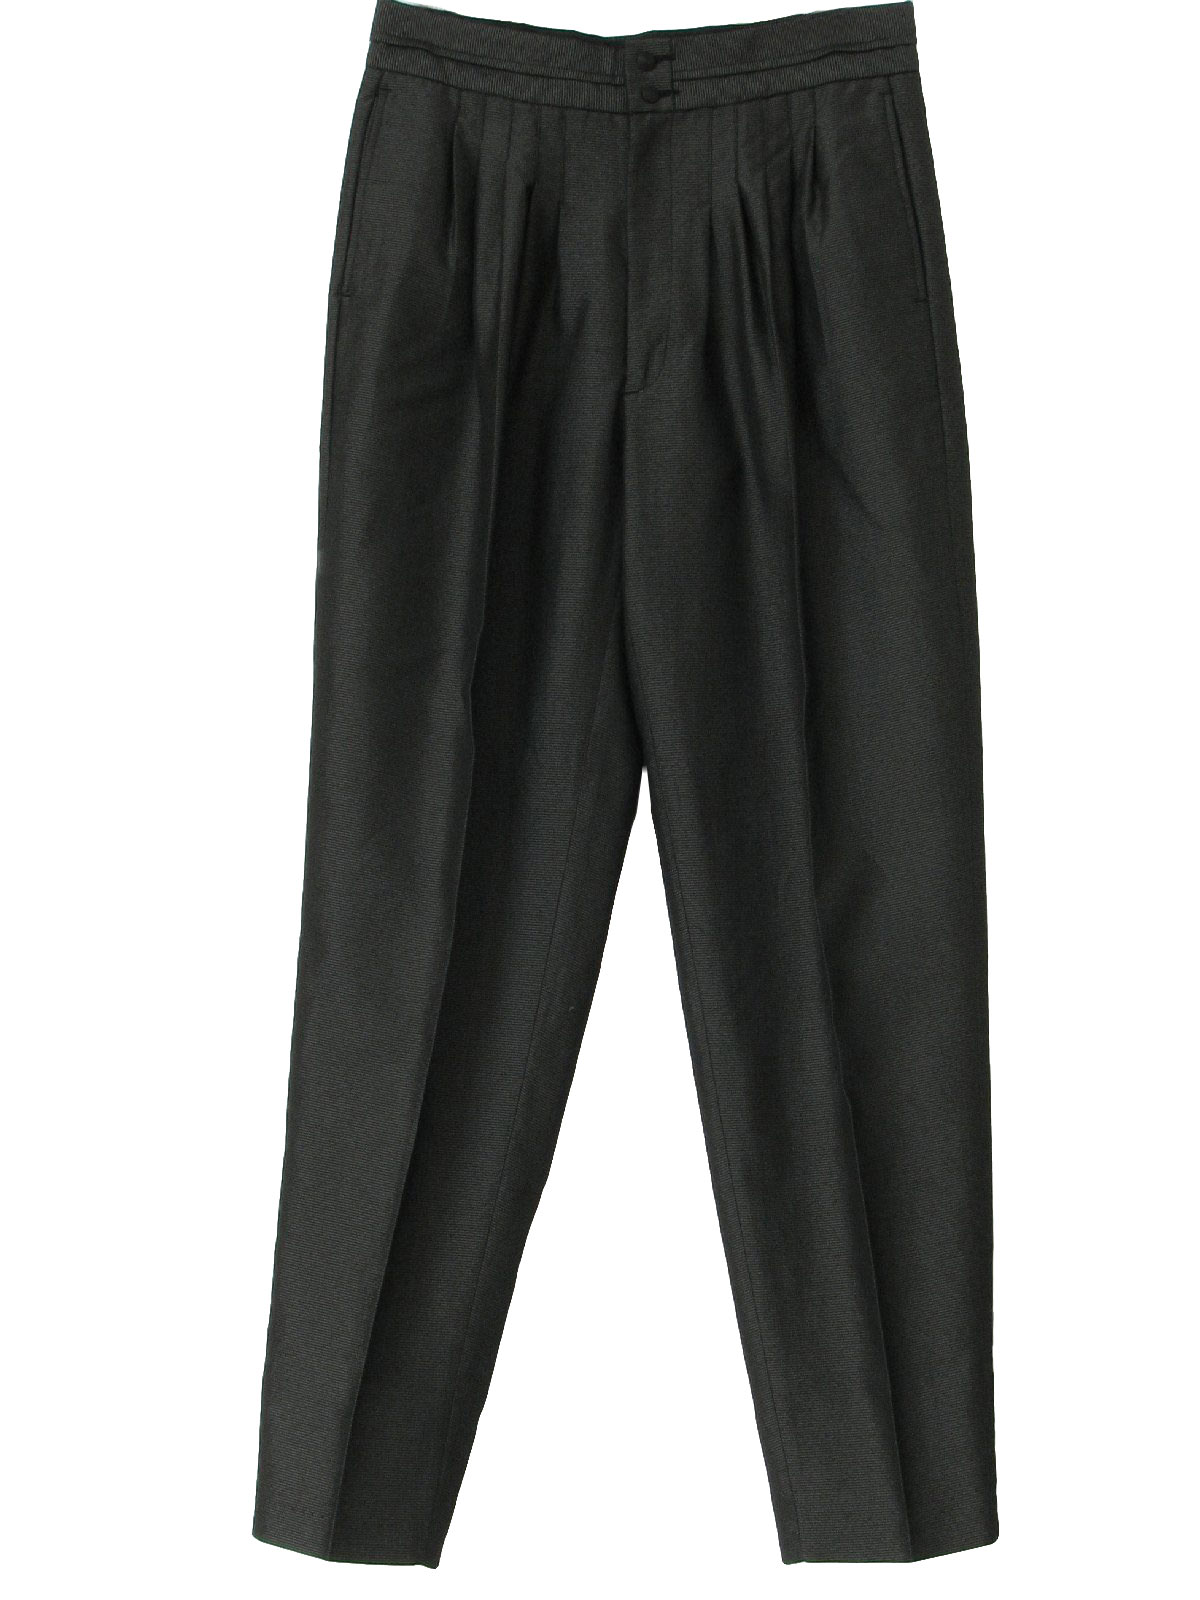 Are Pleated Pants Out